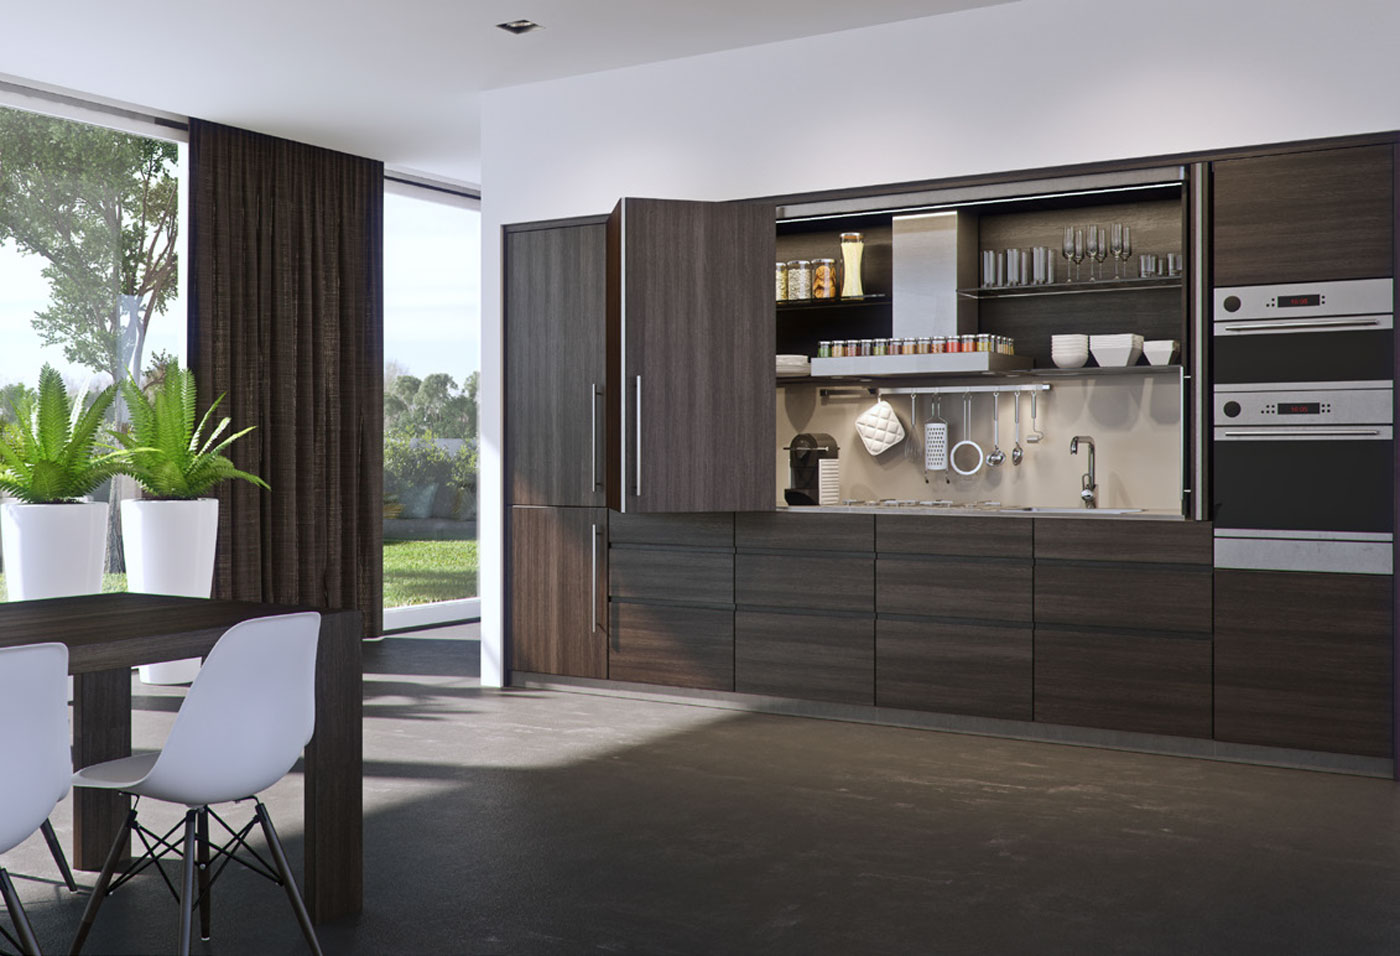 Exploring the hidden potential of a minimalist kitchen